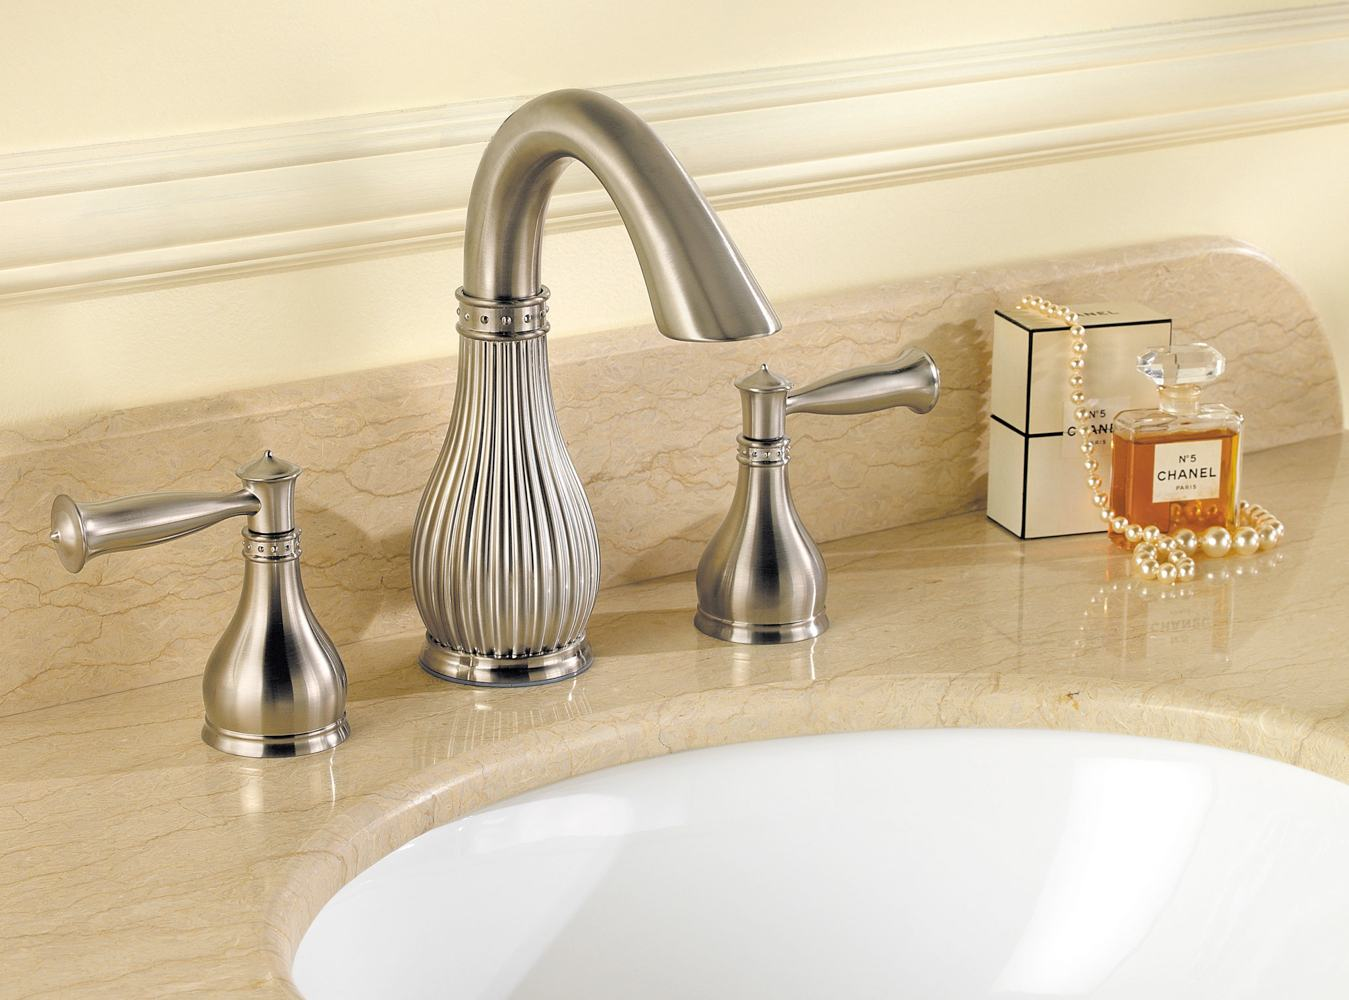 Brushed Nickel Bathroom Faucets Clearance.Faucet Com K 45102 4 BN In ...